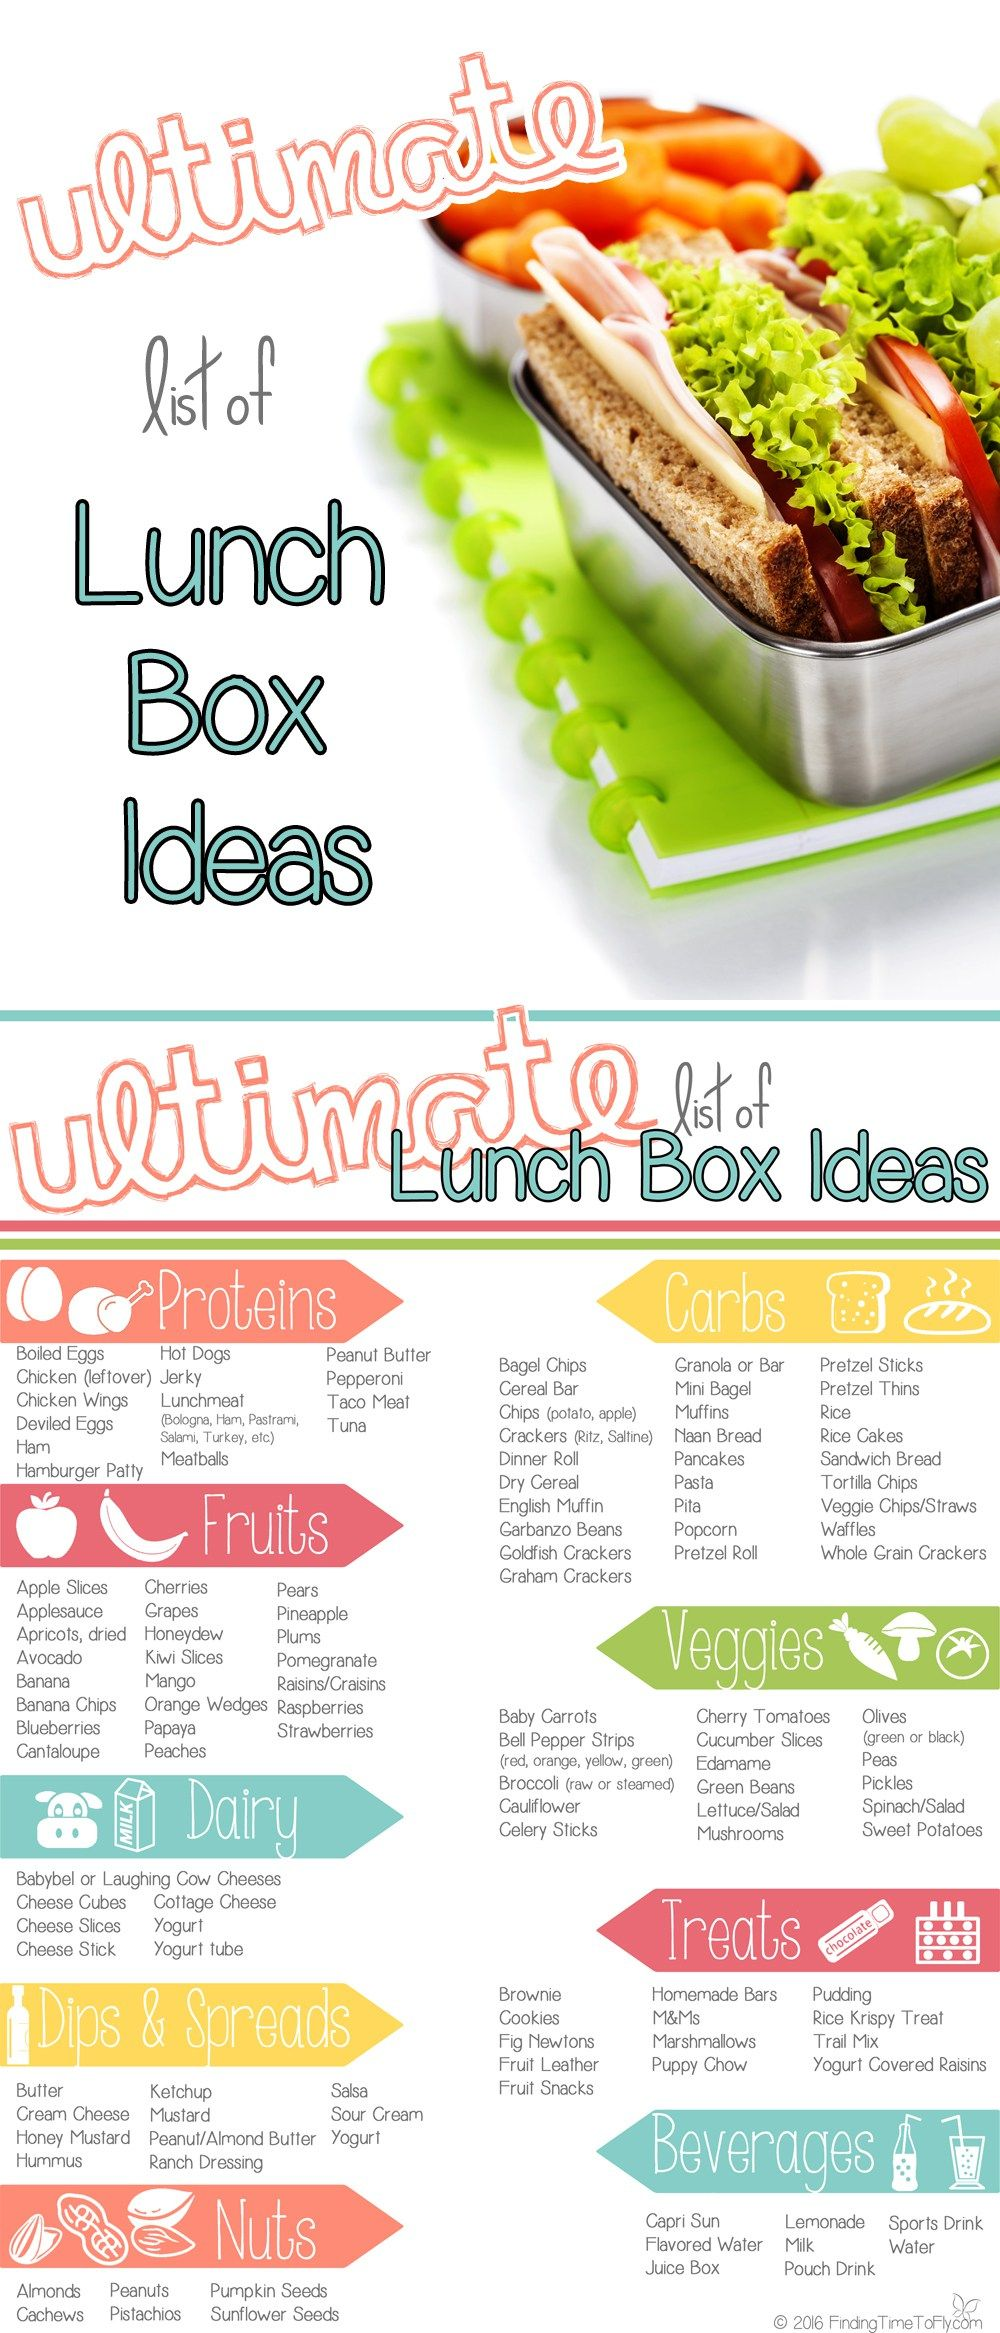 ultimate list of lunch box ideas essen trinken pinterest mittagessen essen und gesundes. Black Bedroom Furniture Sets. Home Design Ideas